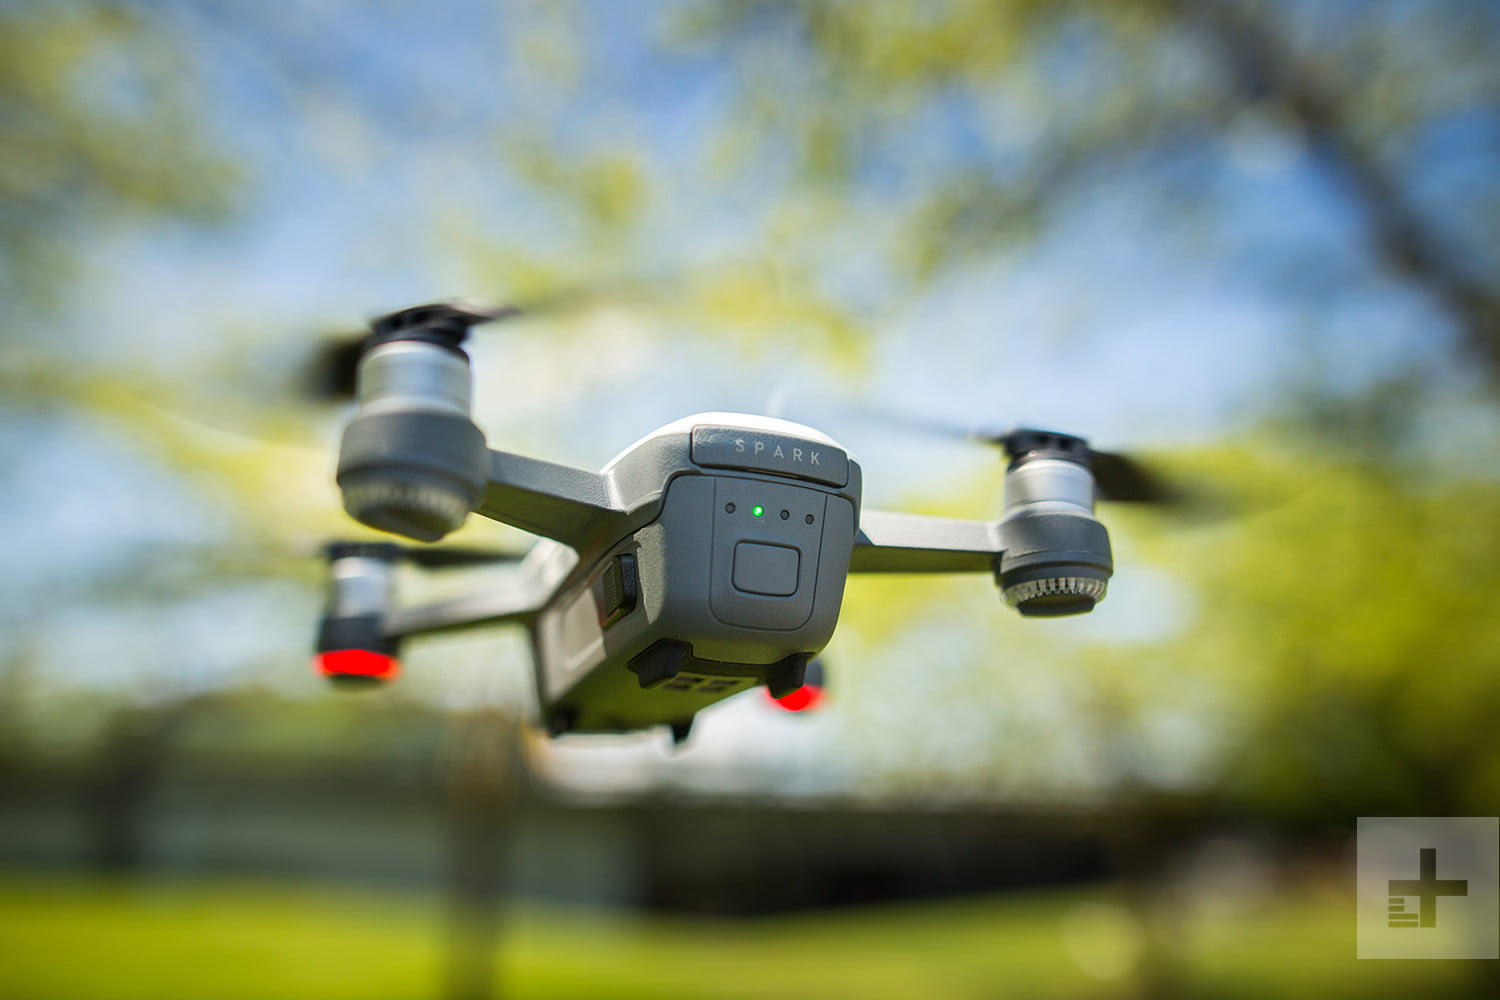 767b063d1c7 DJI is Offering Steep Discounts on Drones for Amazon Prime Day 2018 |  Digital Trends